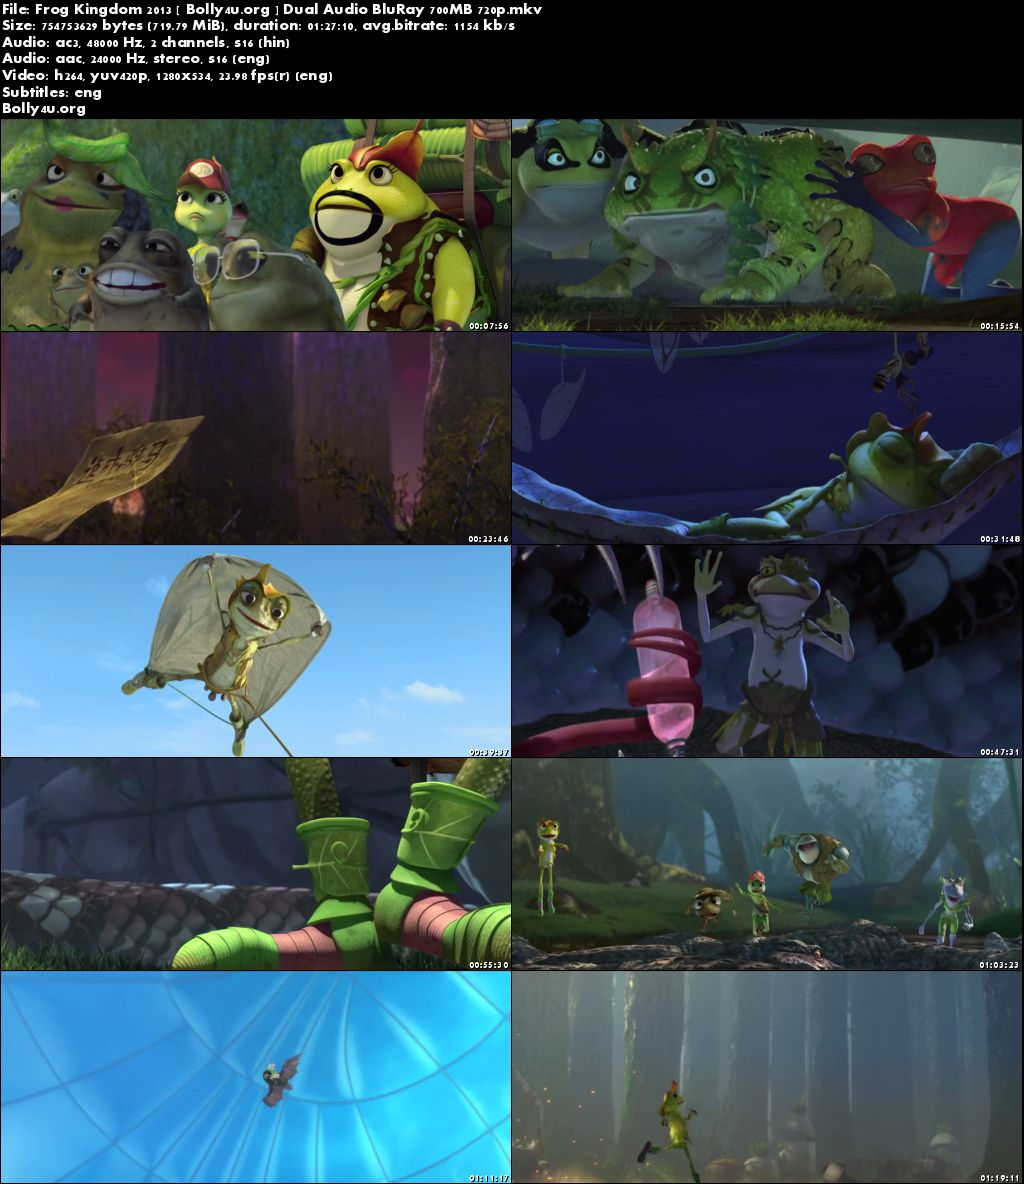 Frog Kingdom 2013 BRRip 700MB Hindi Dual Audio 720p Download